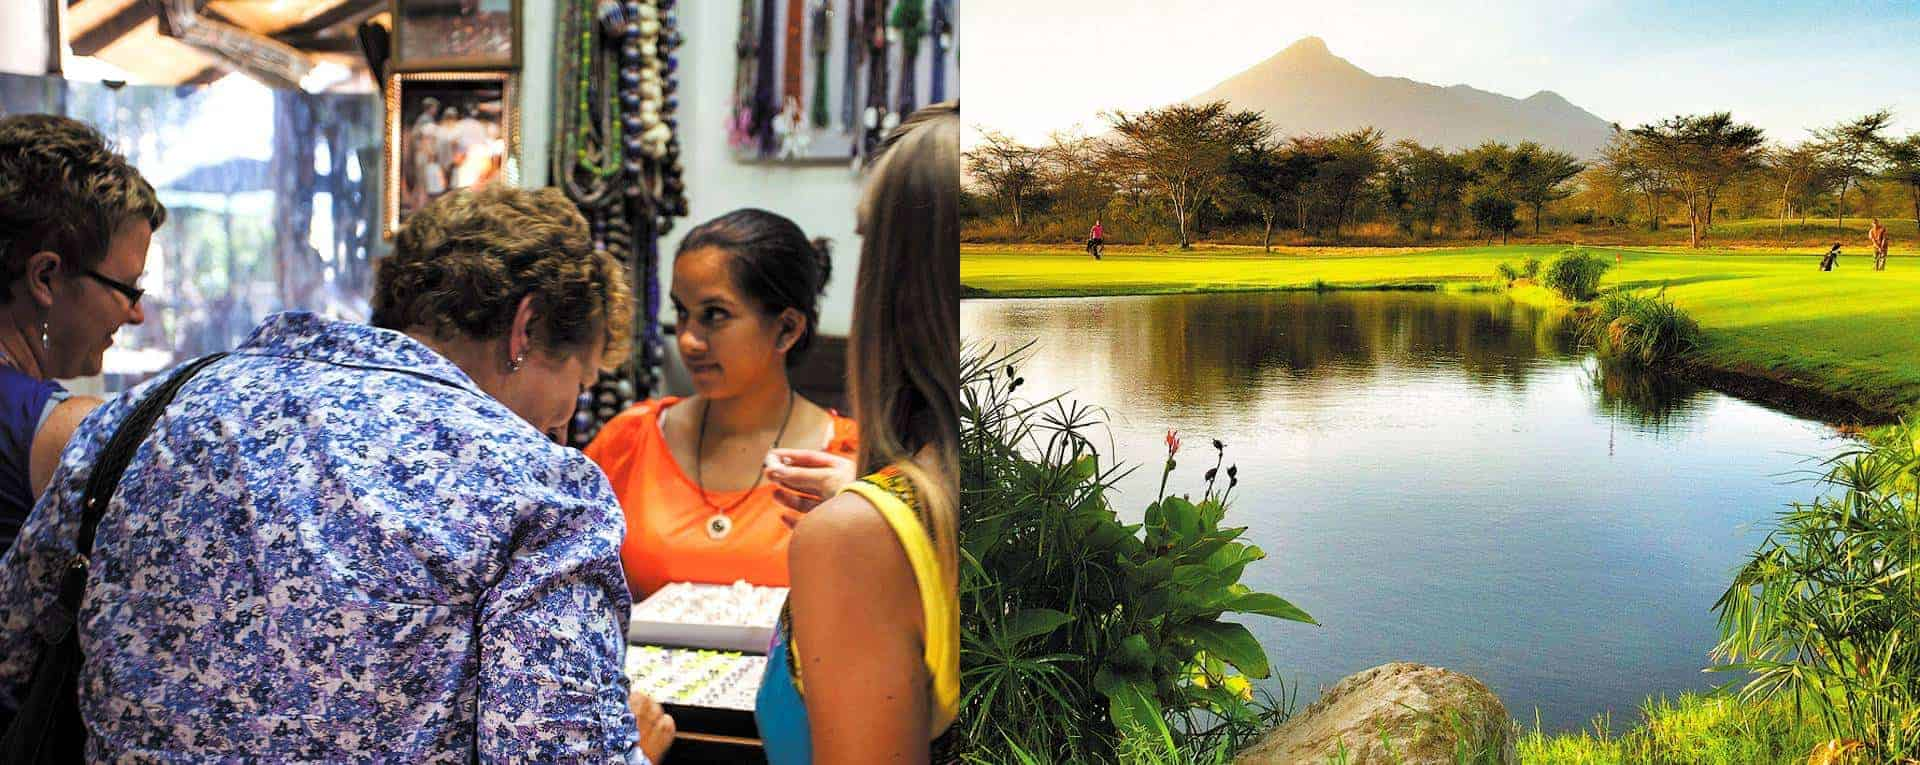 travel guide tanzania towns city arusha tours activities